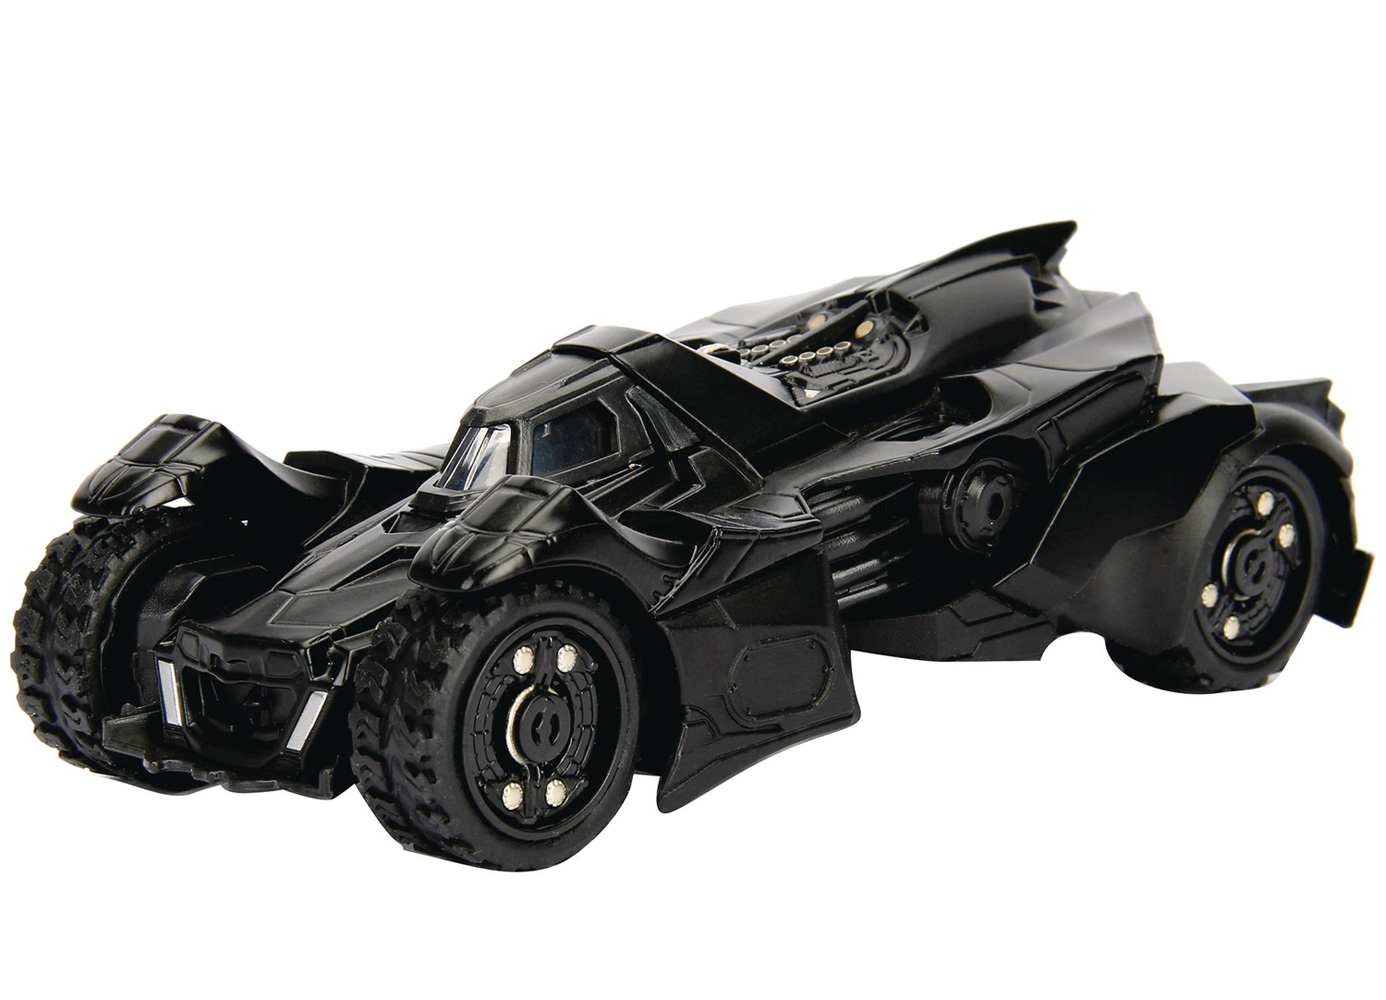 Image: Metals Batmobile Vehicle: Arkham Knight  (1/32 Scale) - Jada Toys, Inc